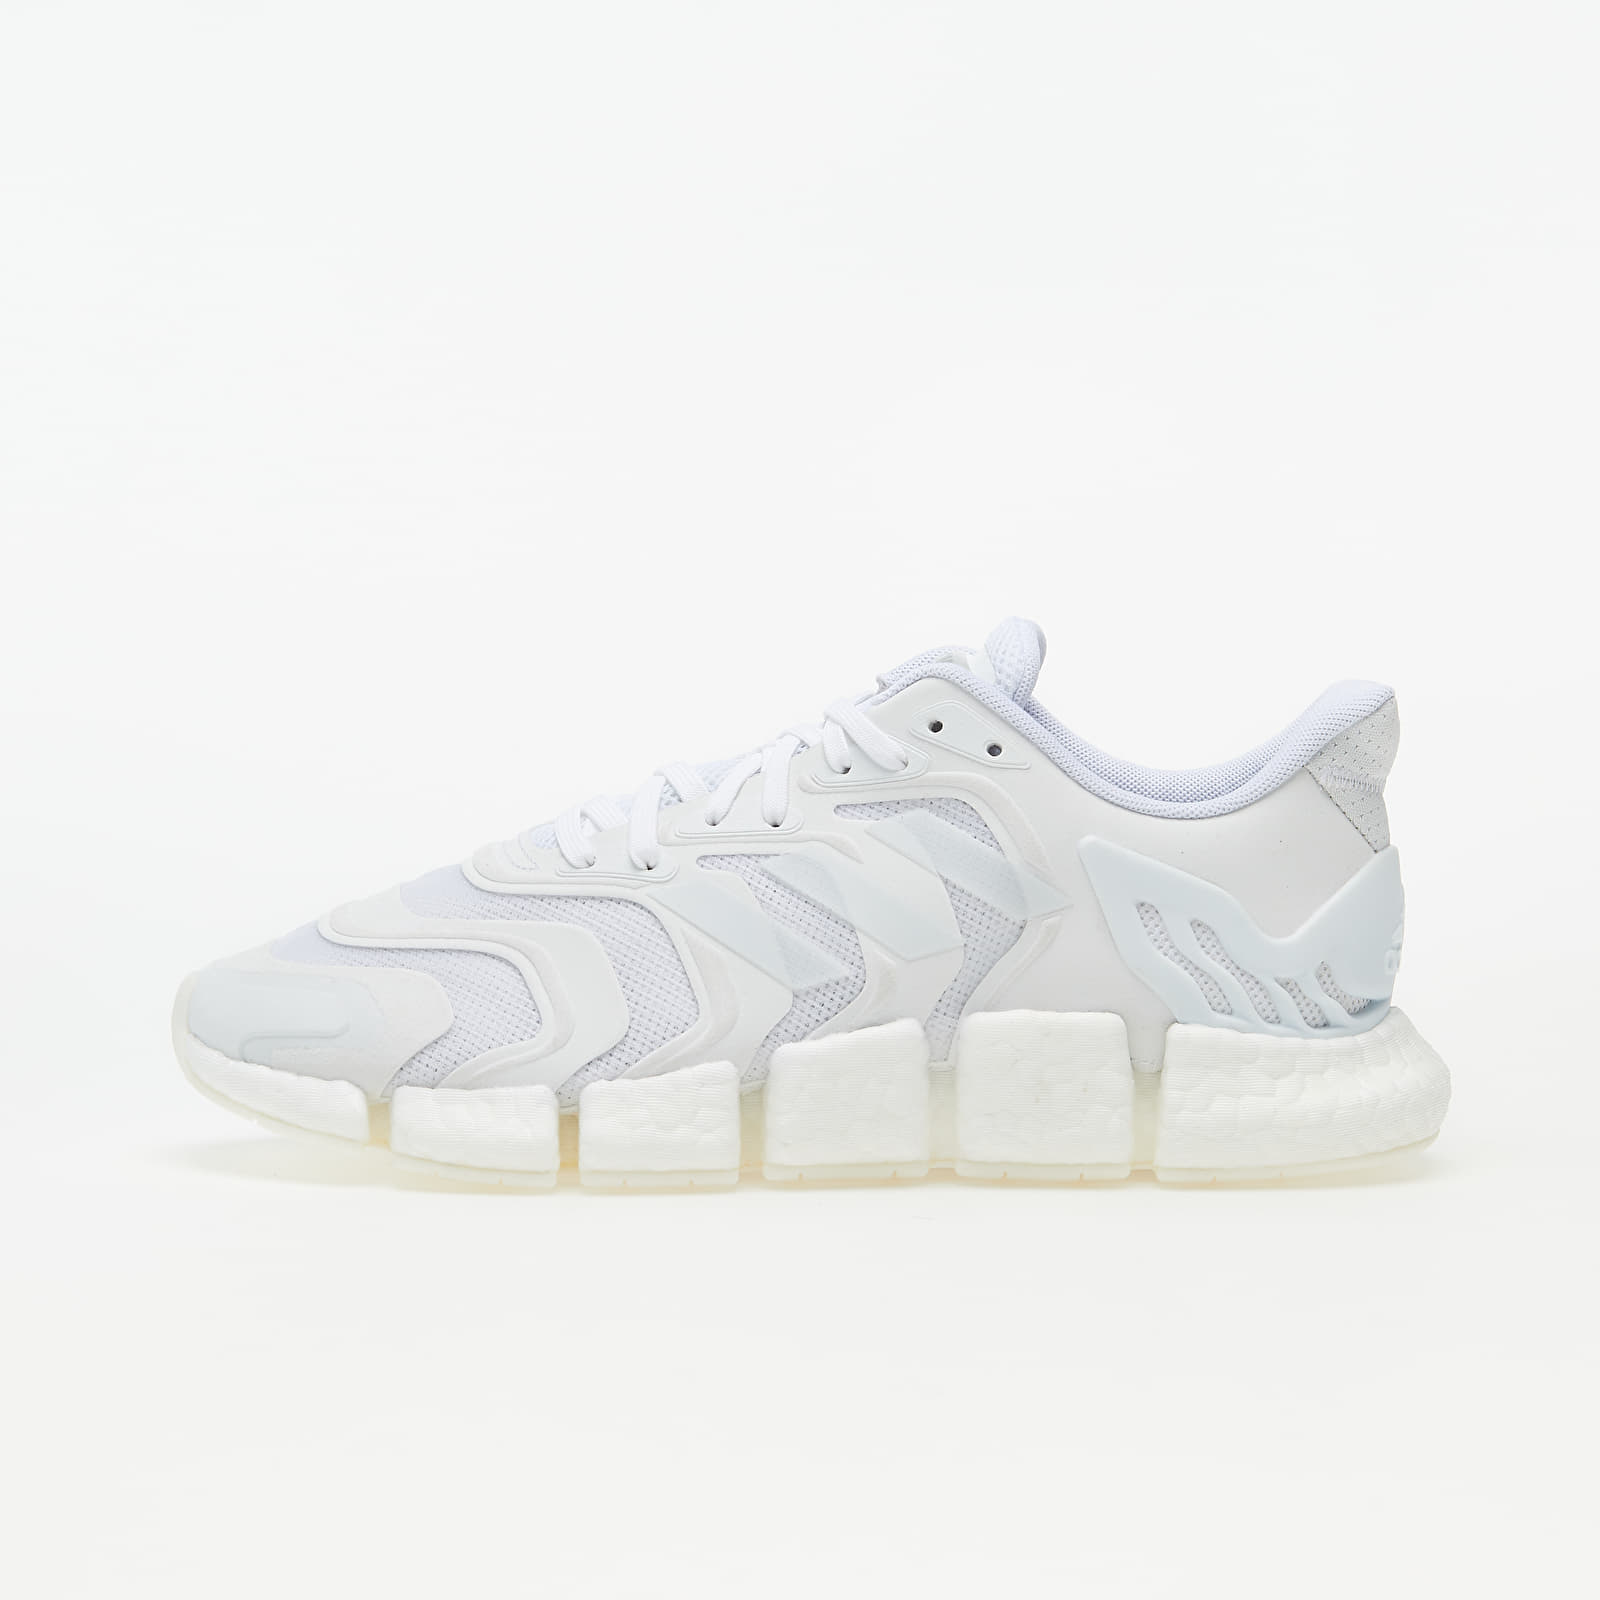 adidas Climacool Vento Ftw White/ Ftw White/ Ftw White FX7842